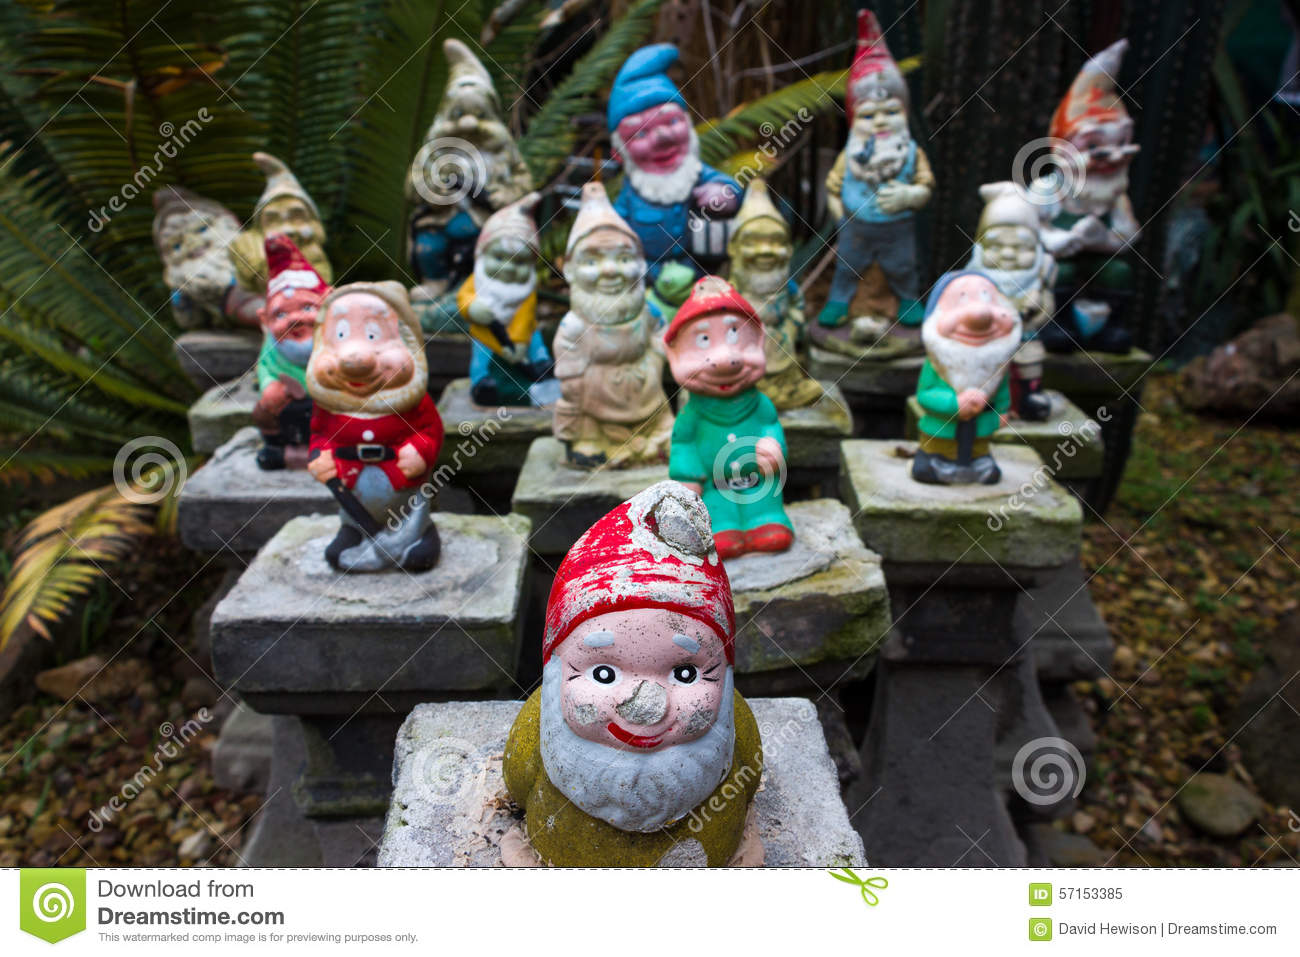 Gardening Group: A Group Of Colorful Garden Gnomes Stock Image